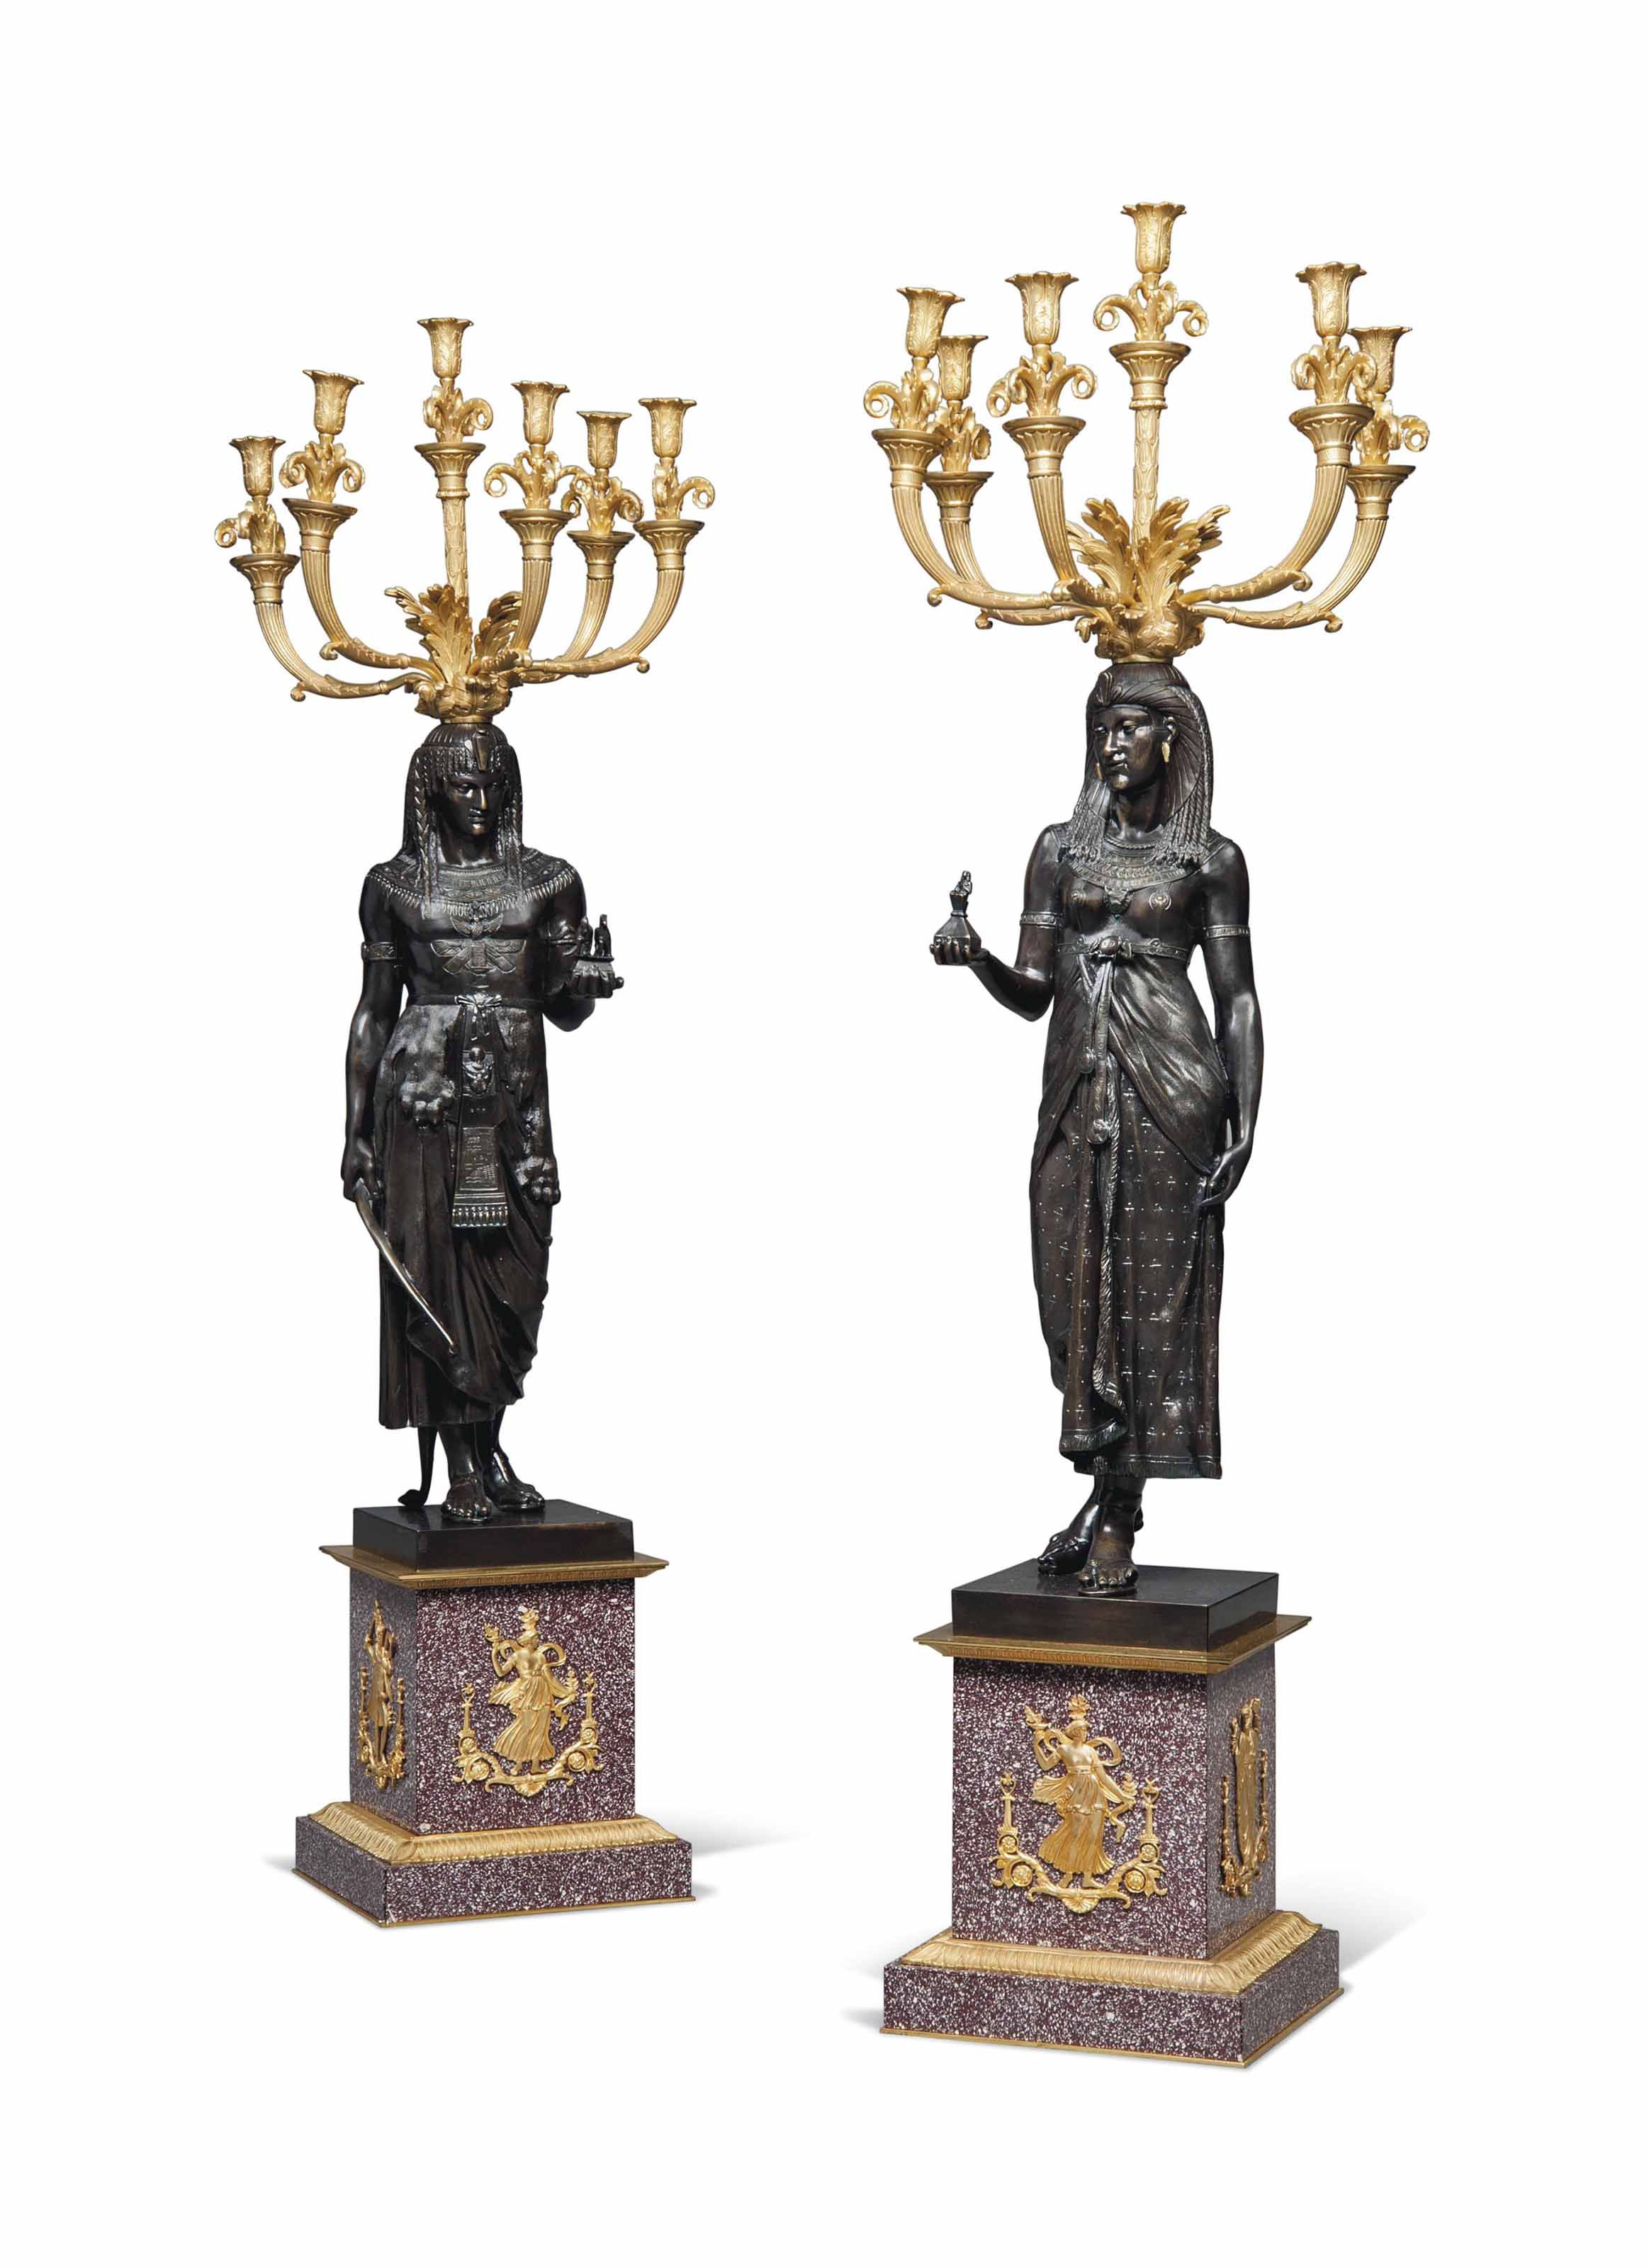 A PAIR OF FRENCH ORMOLU AND PATINATED-BRONZE SIX-LIGHT CANDELABRA